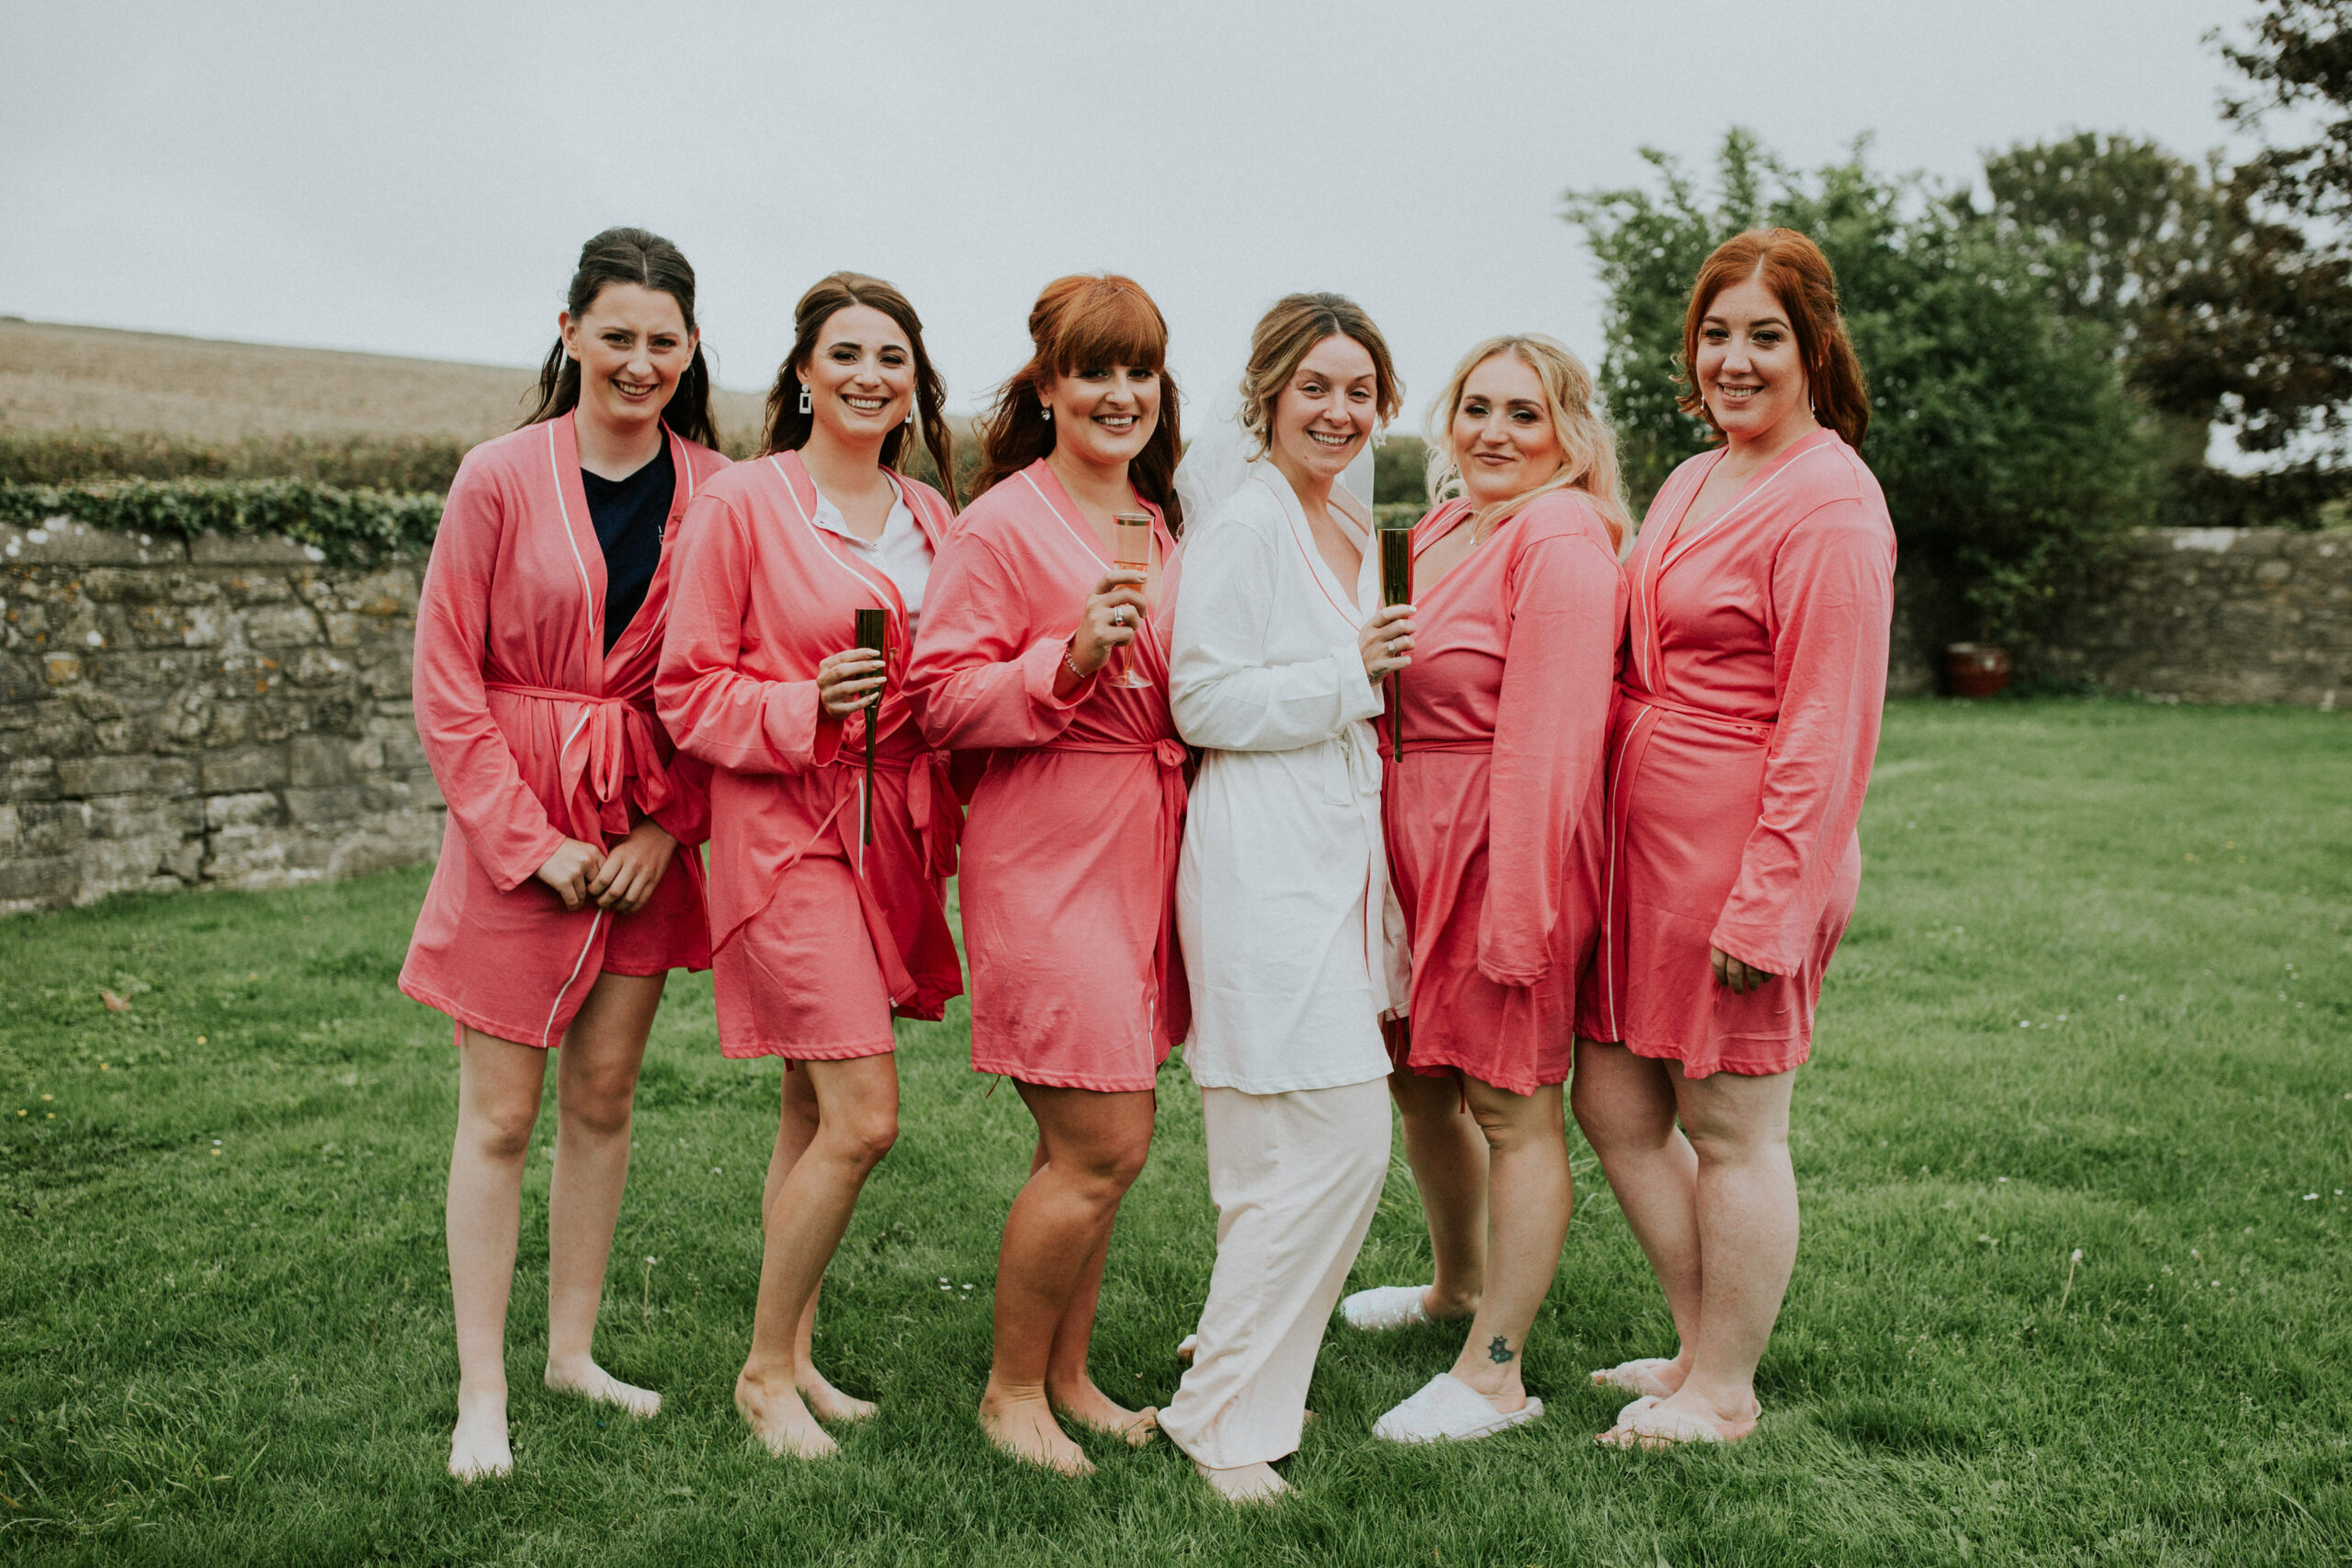 bridesmaids group shot in a field